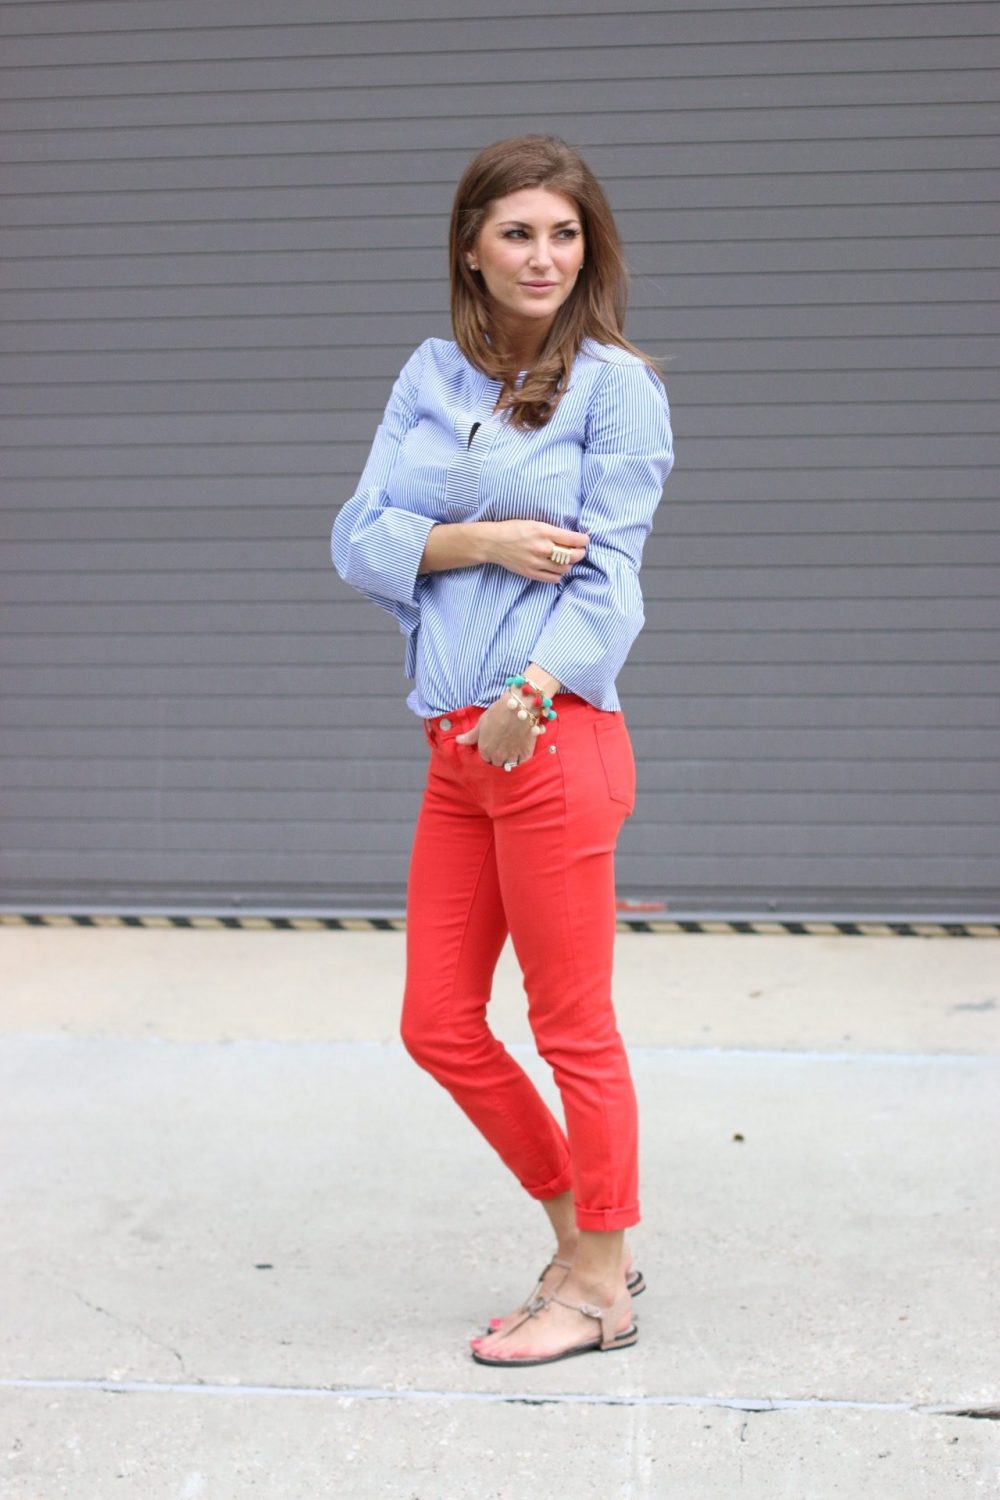 Showing off J. Crew outfit. Striped J. Crew top and red J. Crew pants